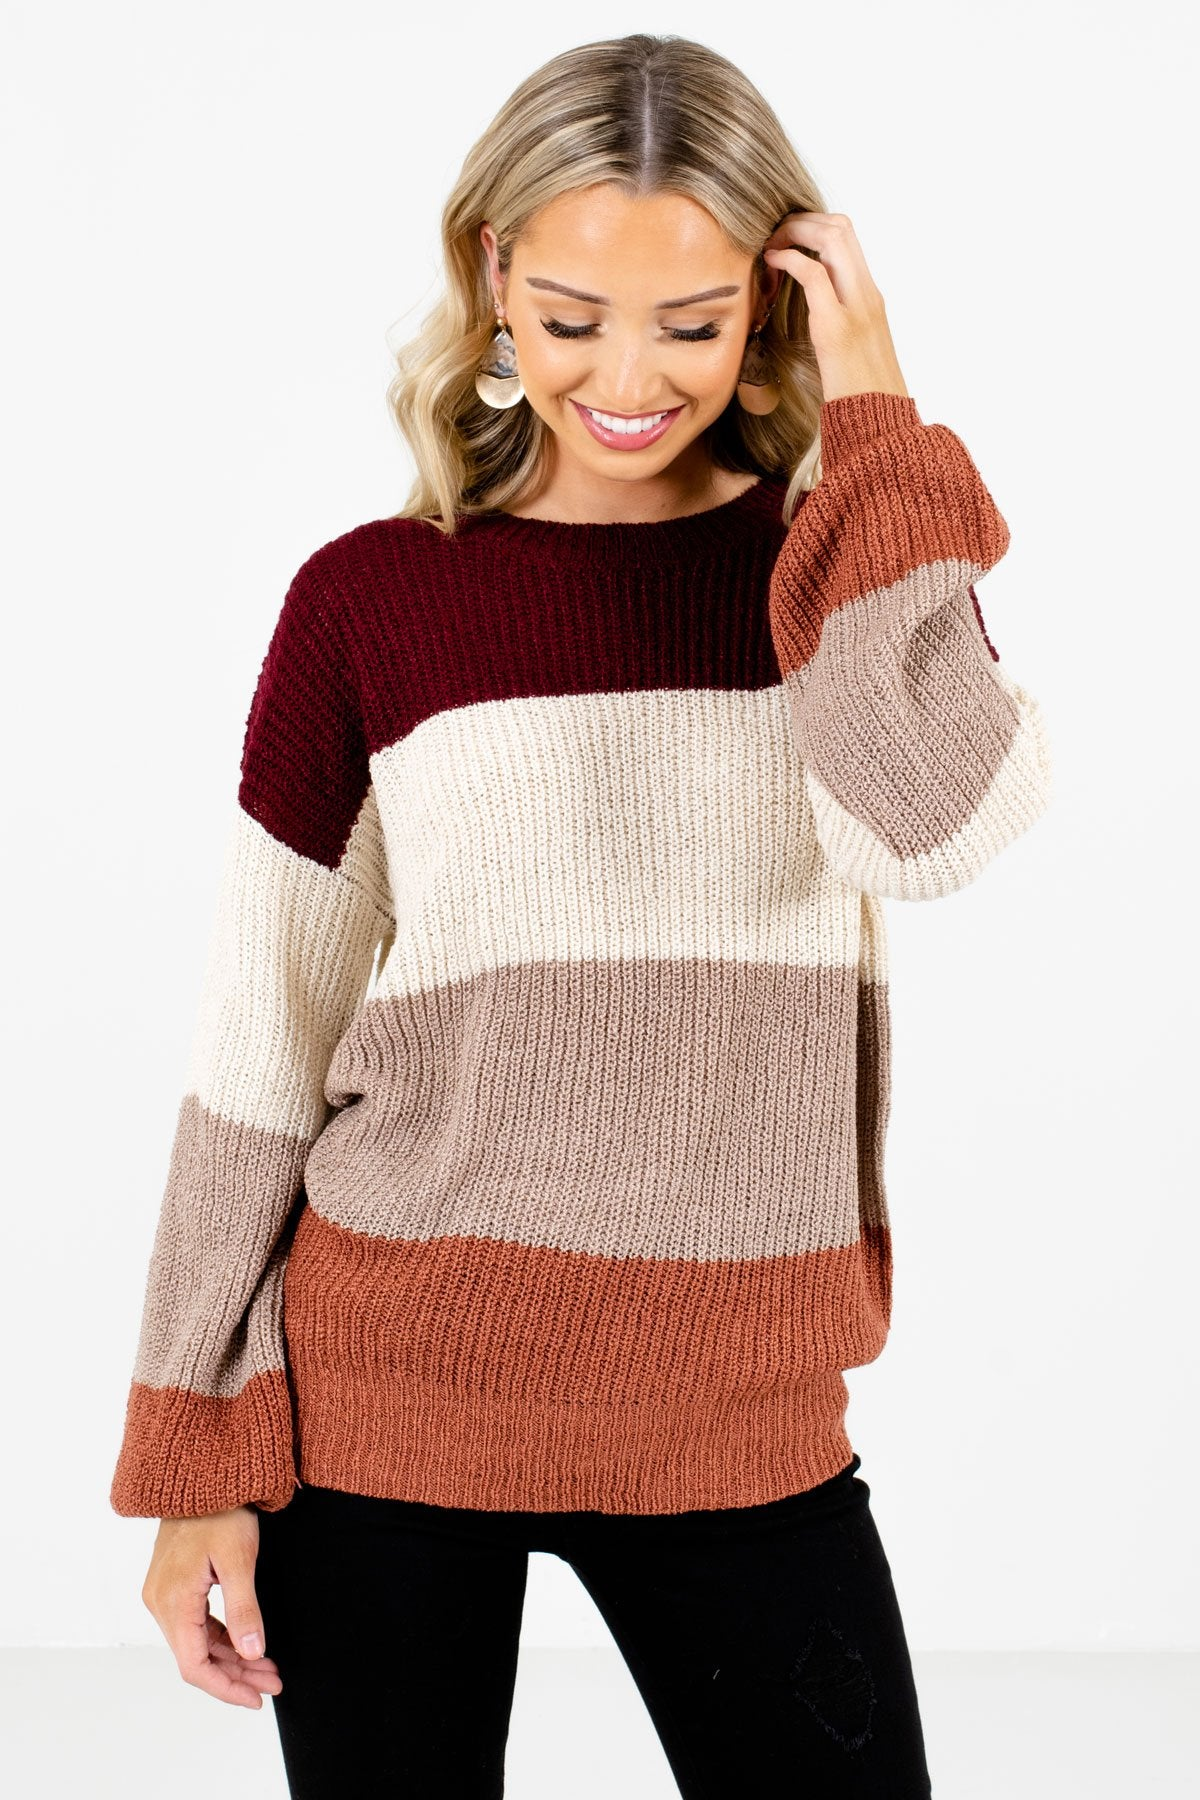 Taupe Brown Color Block Striped Patterned Boutique Sweaters for Women